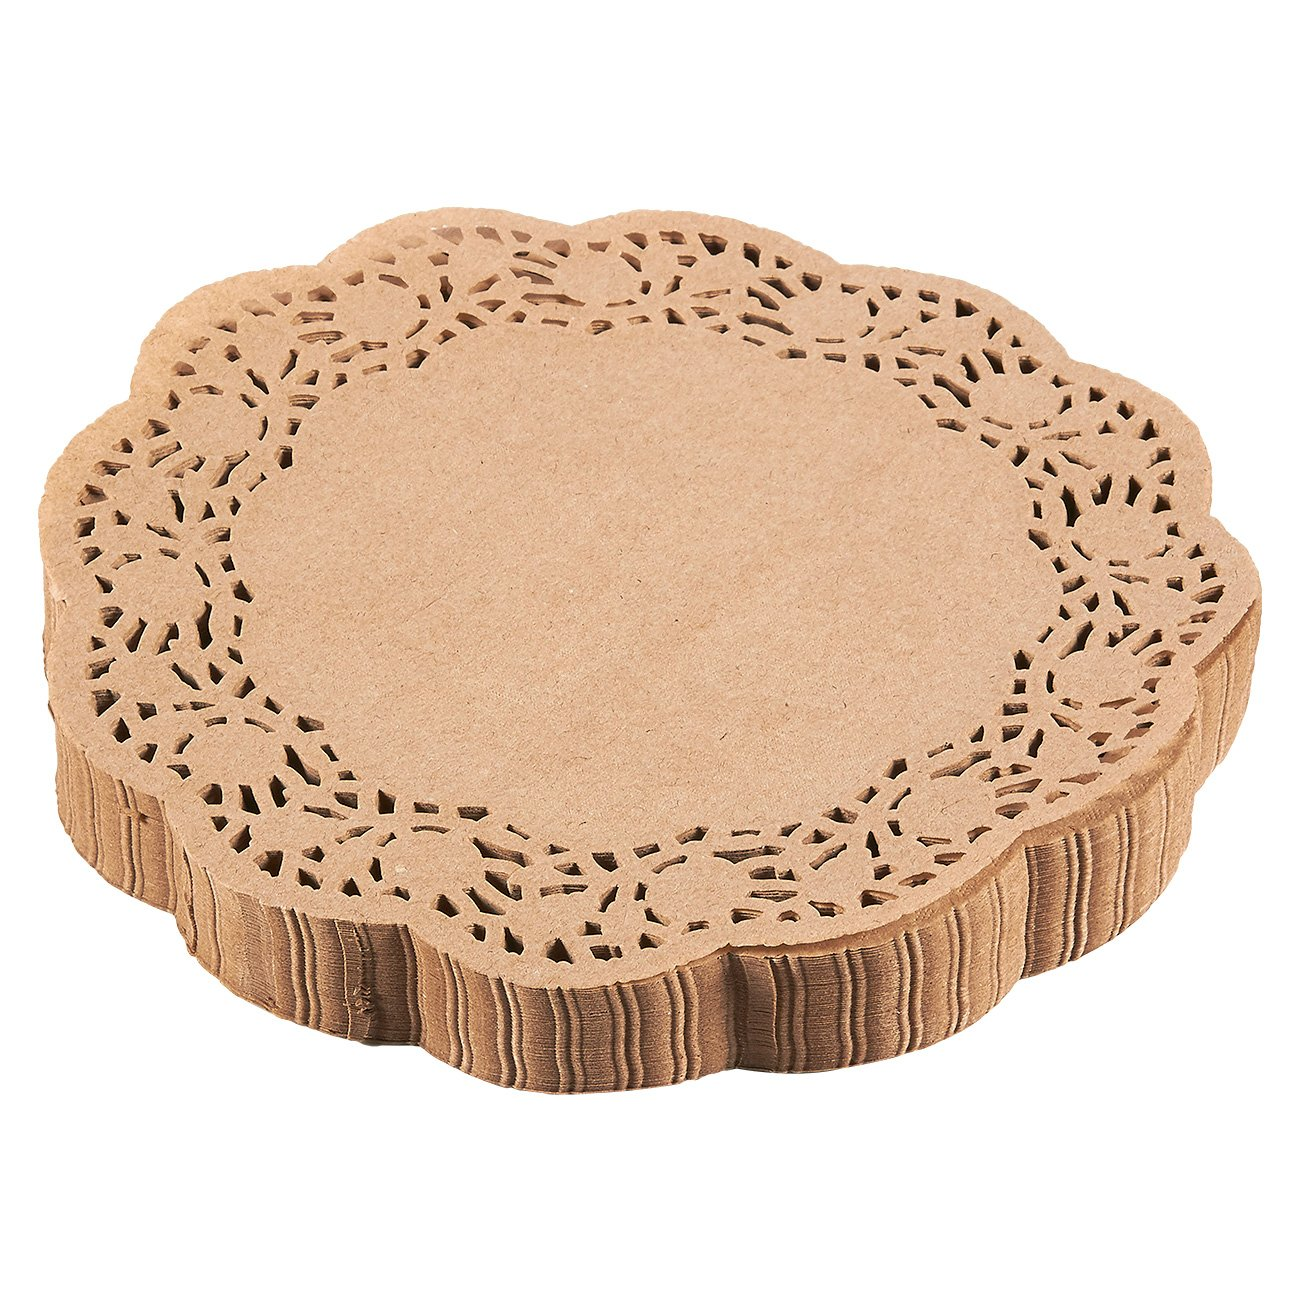 Lace Paper Doilies - 250-Pack Round Decorative Paper Placemats Bulk for Cakes, Desserts, Baked Treat Display, Ideal for Weddings, Formal Event Tableware Decoration - Brown, 9 Inches in Diameter